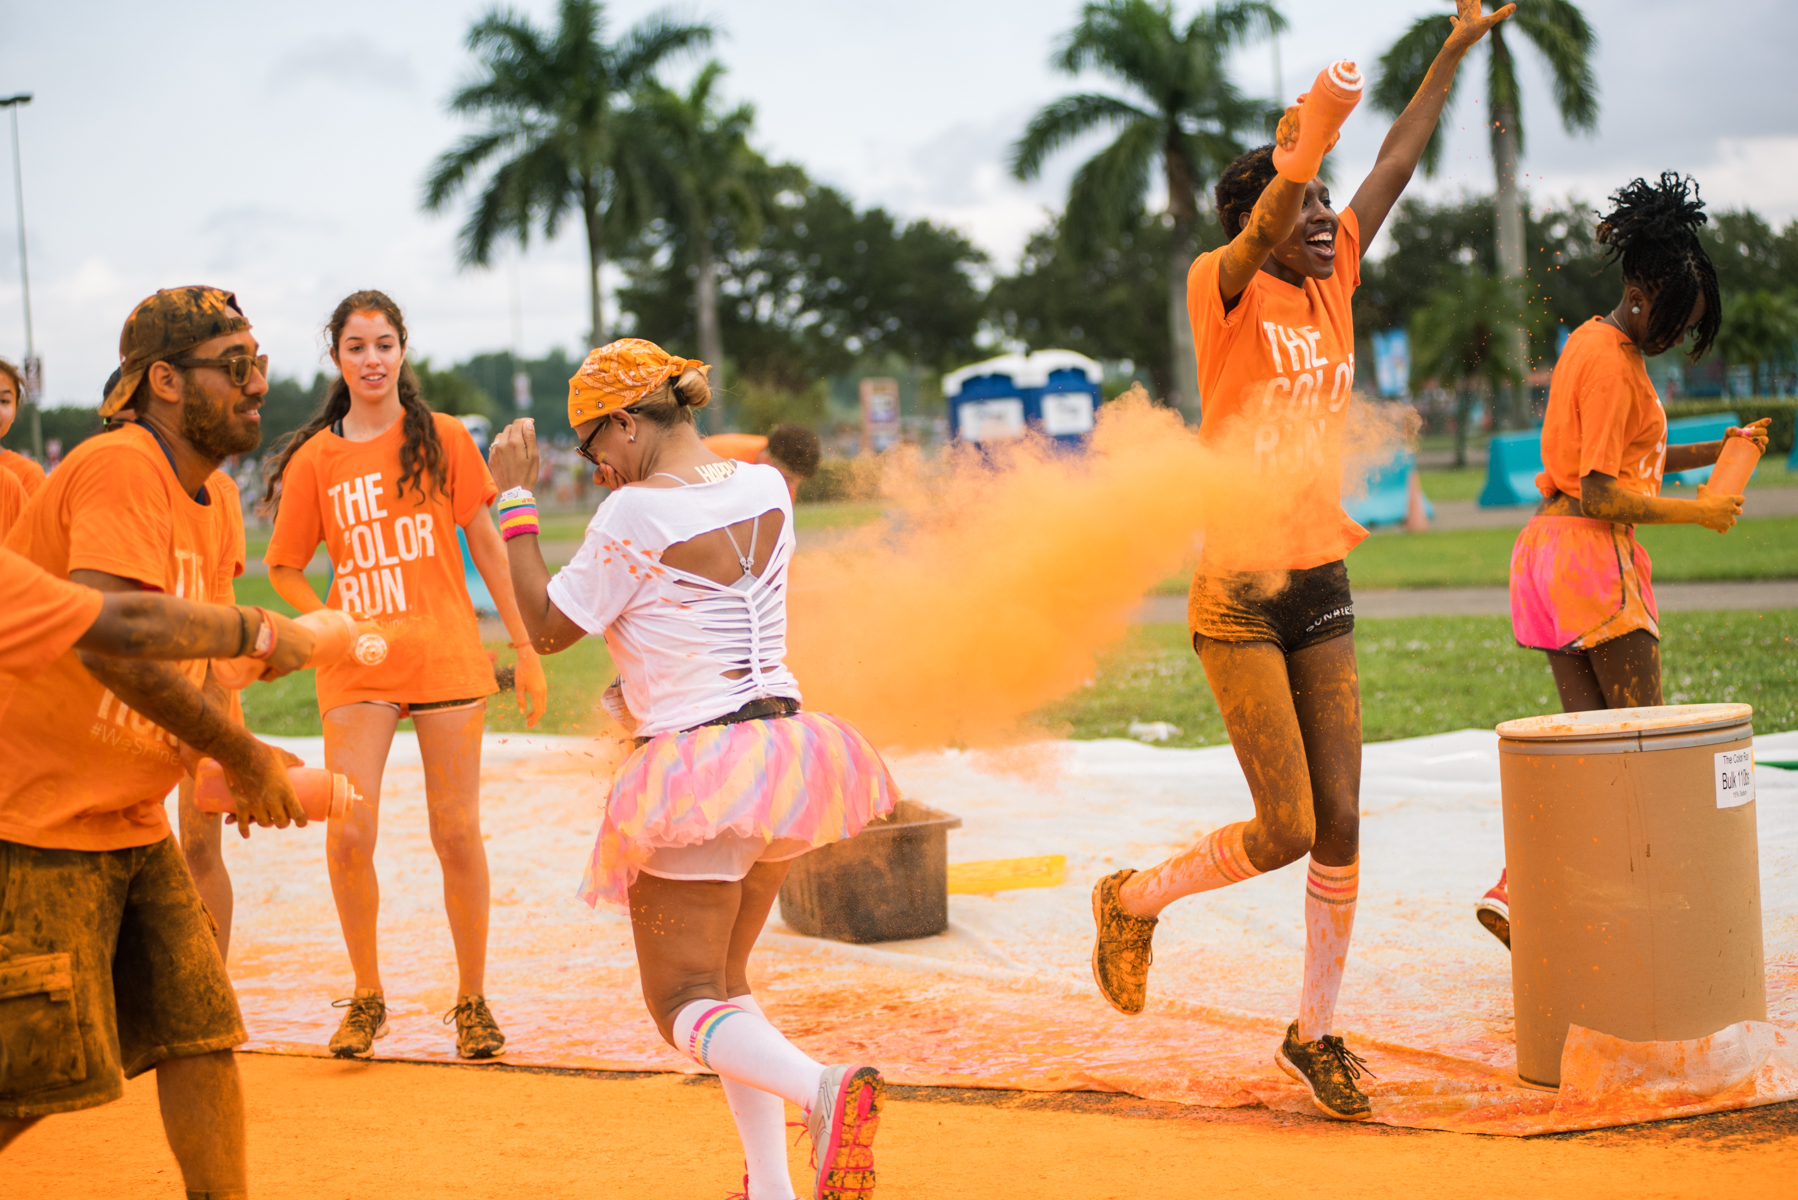 Color_Run-28.jpg